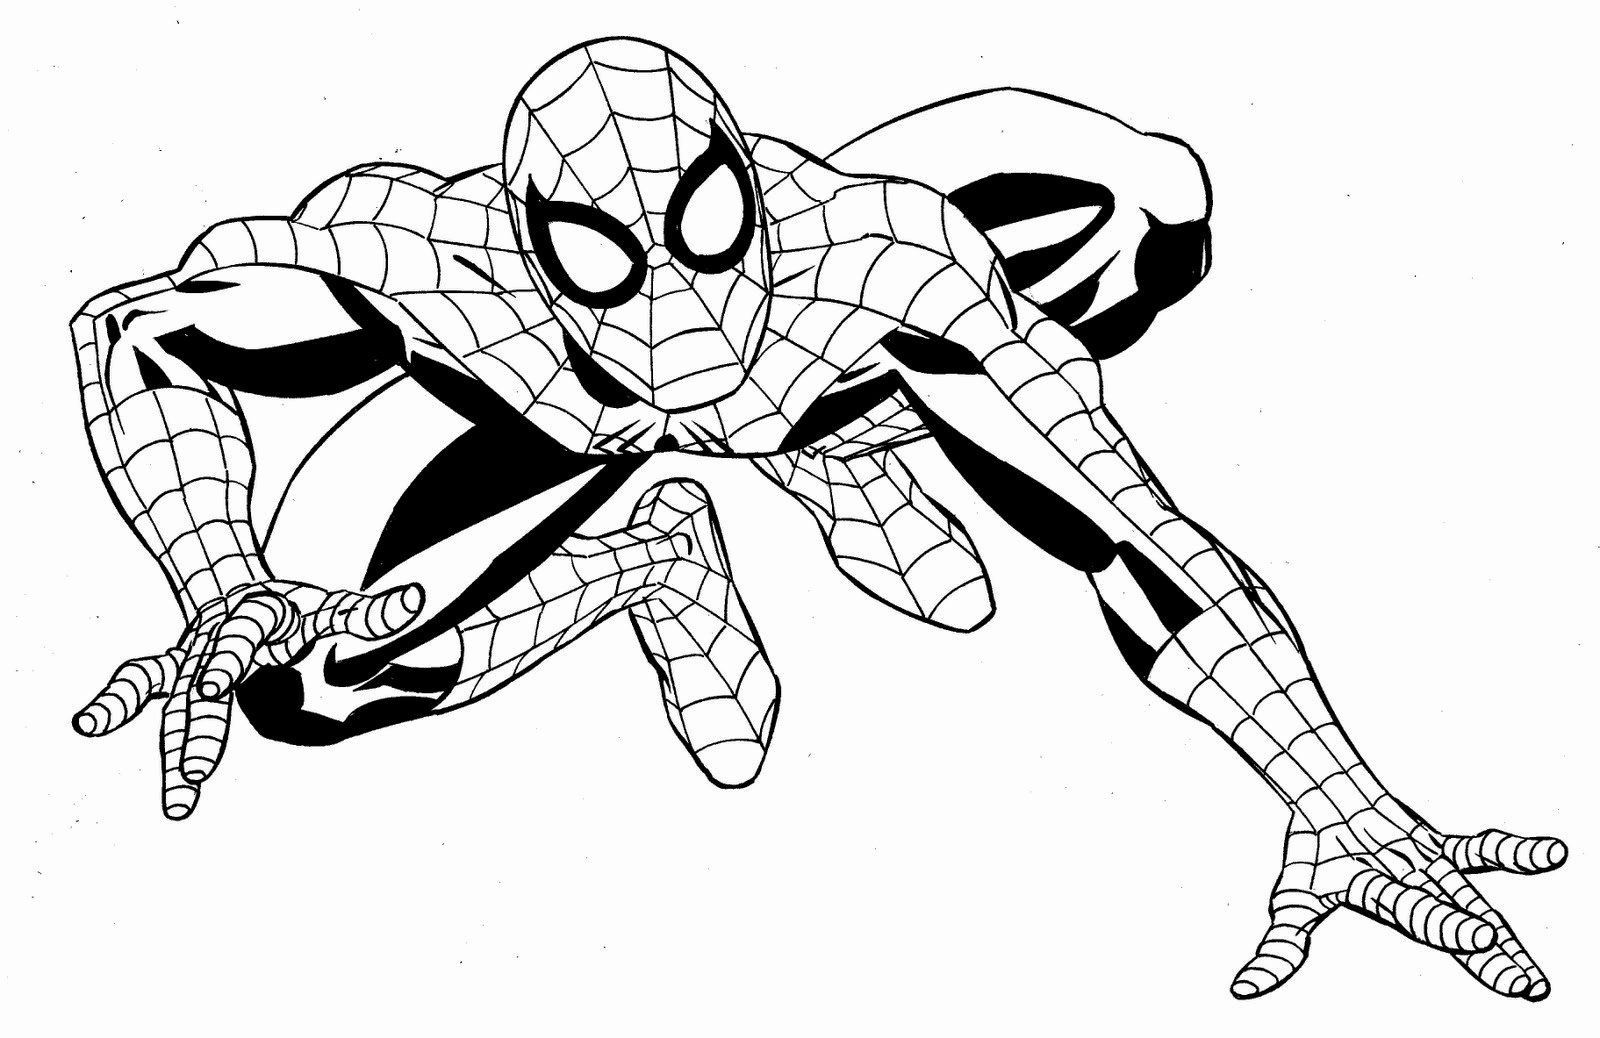 Super Hero Coloring Page Inspirational Coloring Pages Superhero Coloring Pages Free And Prin In 2020 Superhero Coloring Pages Spiderman Coloring Cartoon Coloring Pages